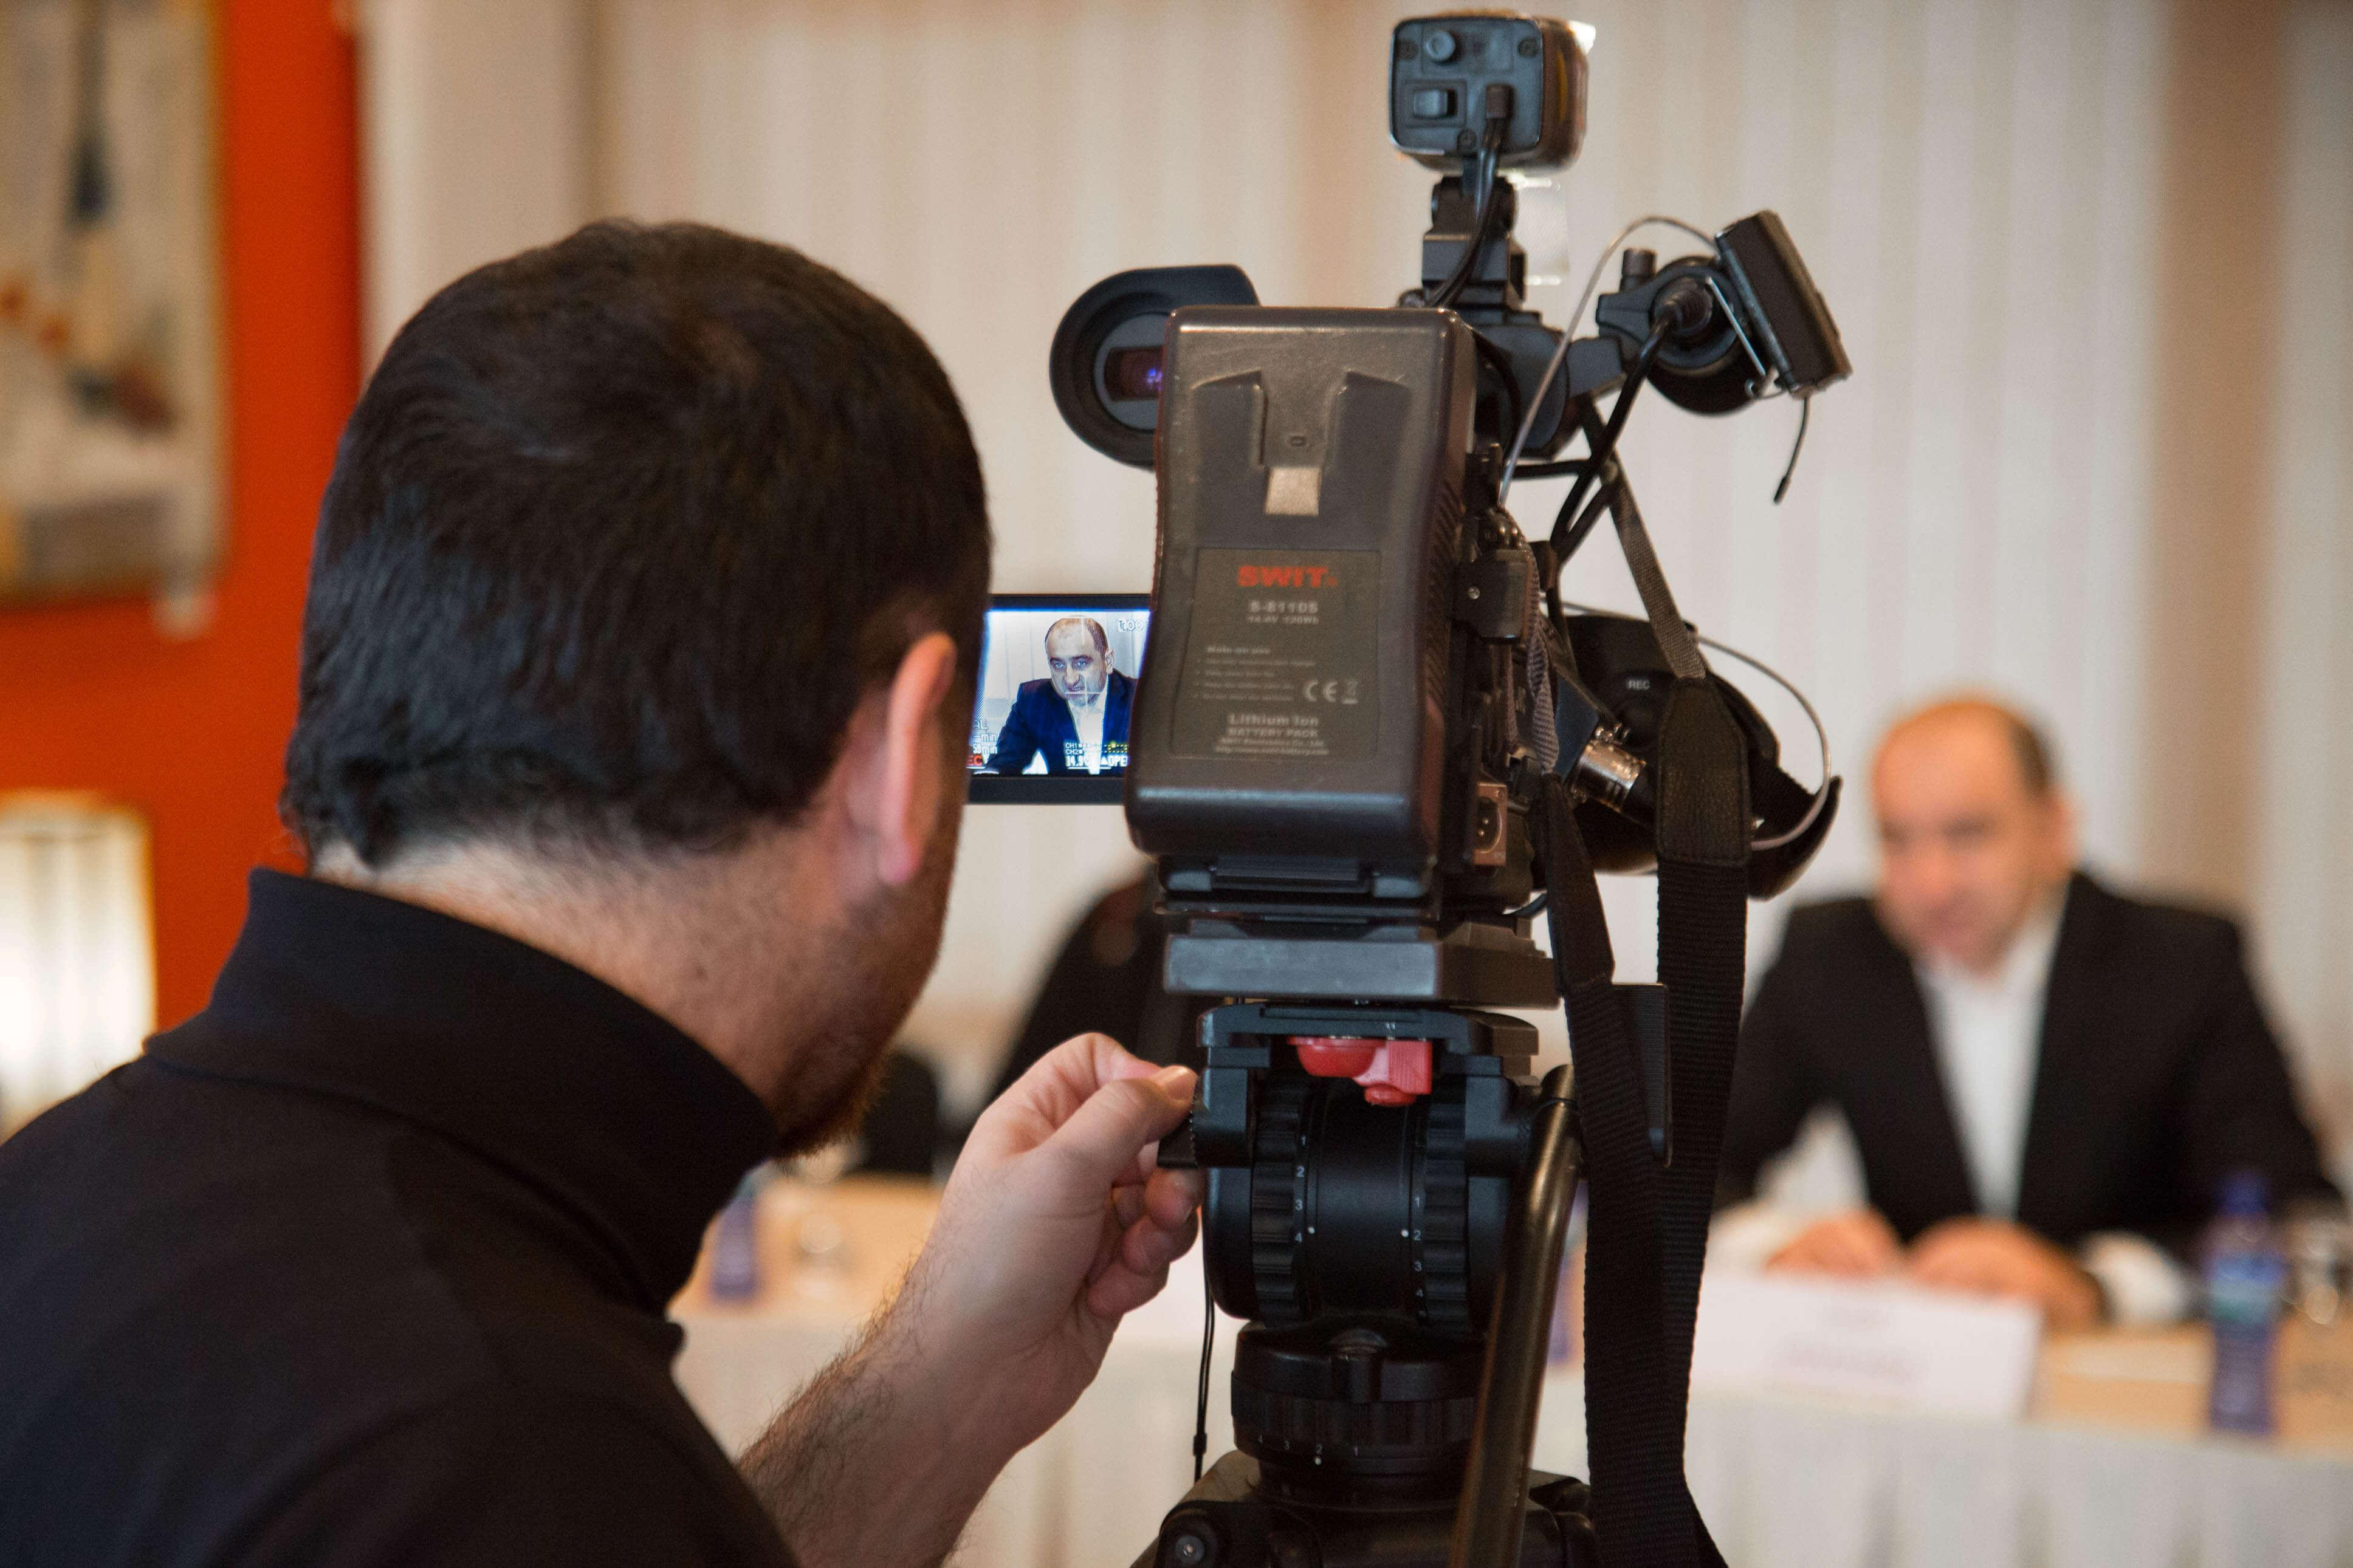 Workshop on the Resilient Cities Project in Central Asia and South Caucasus, Tbilisi, Georgia, 11 November 2015 Filming